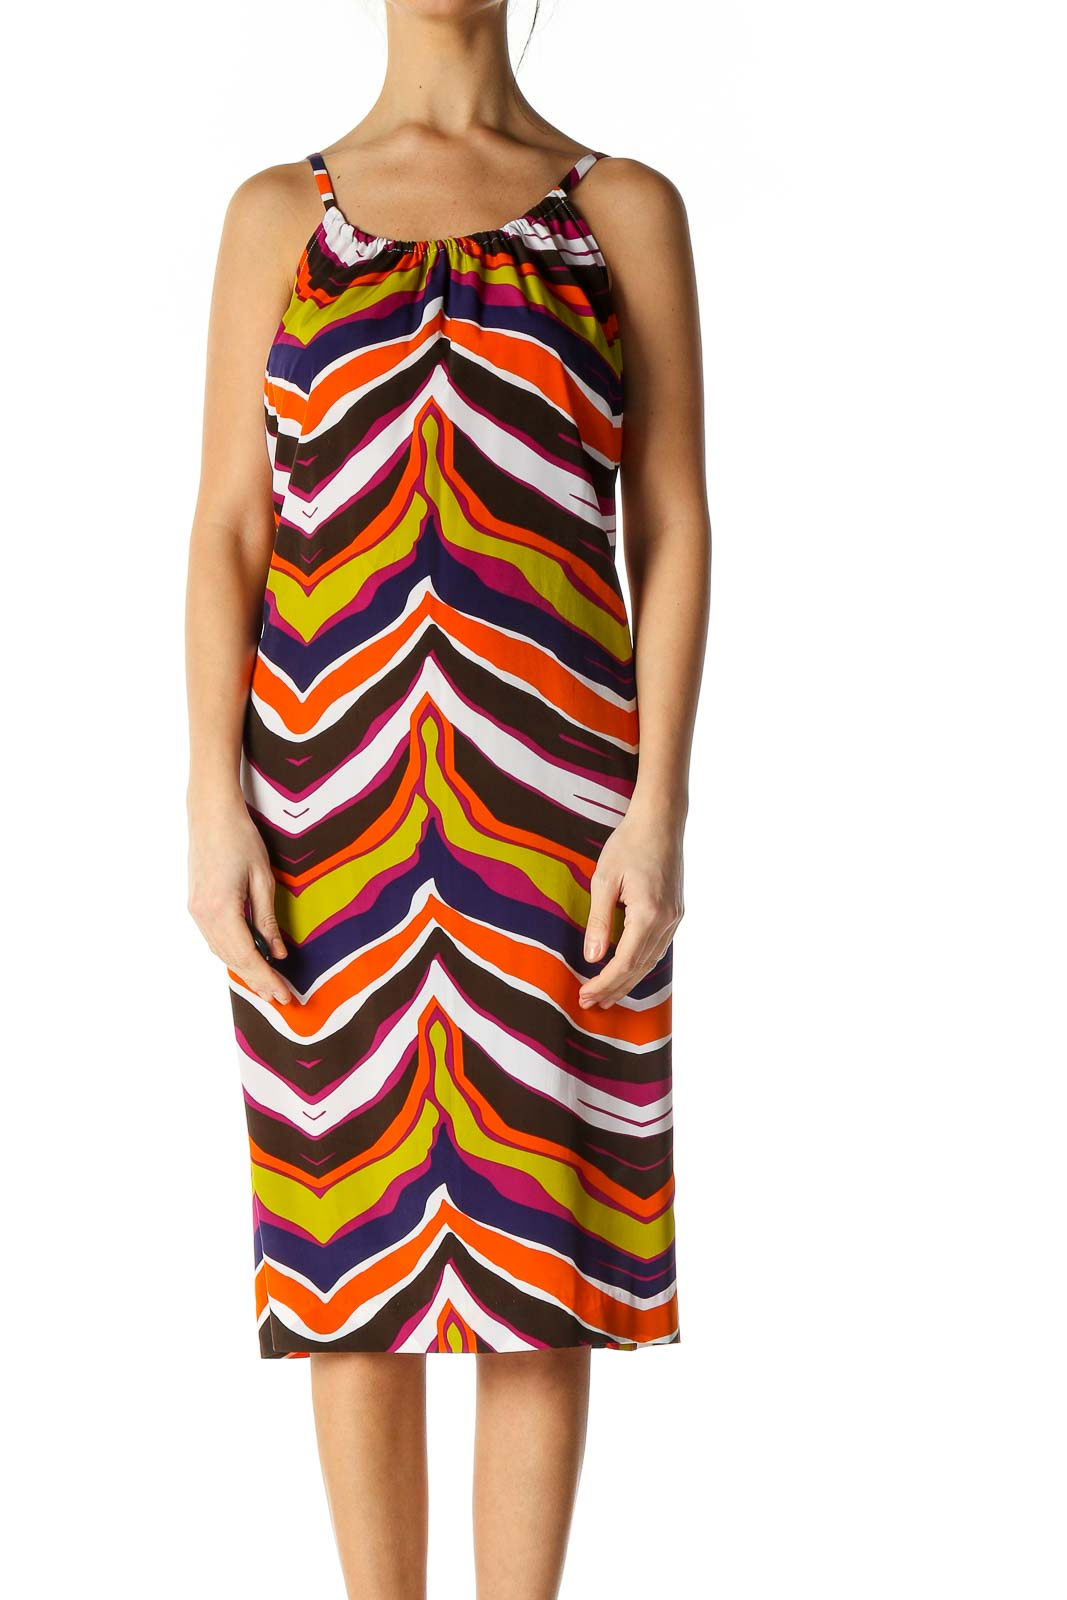 Orange Chevron Casual A-Line Dress Front